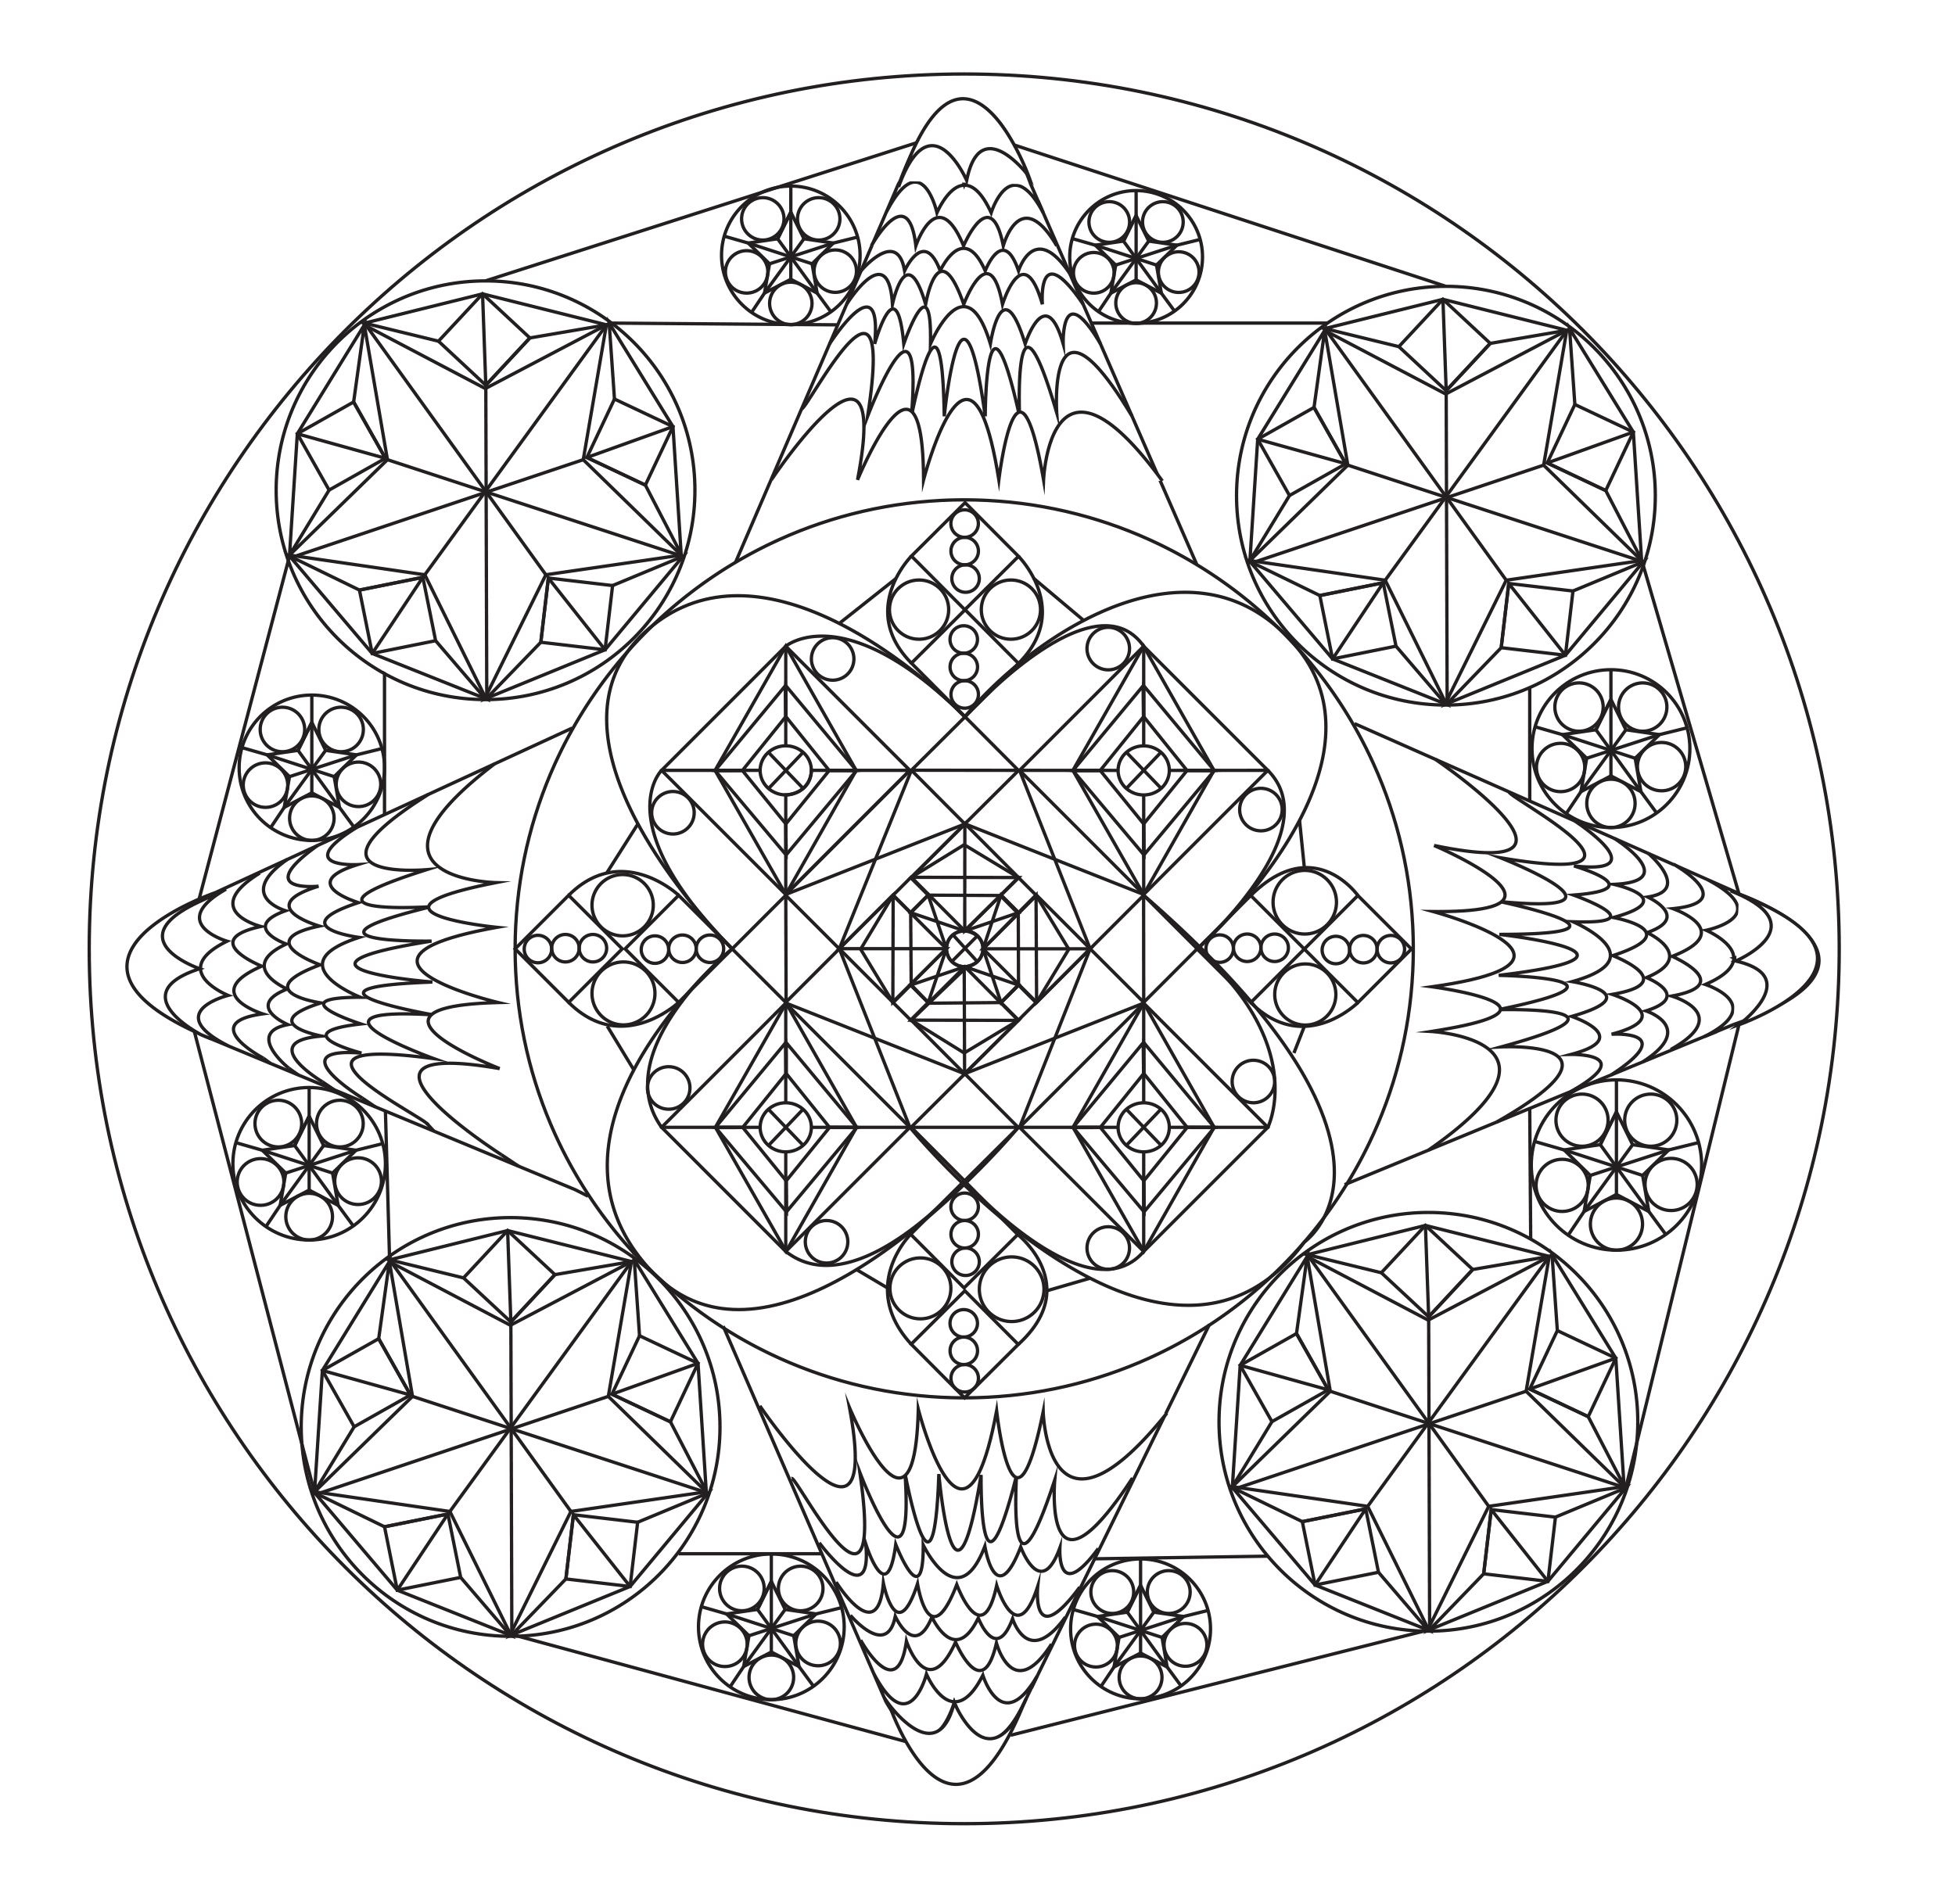 Exclusive Zen & Anti-stress Mandala. Coloring mandalas push aside thoughts and let your creativity flow